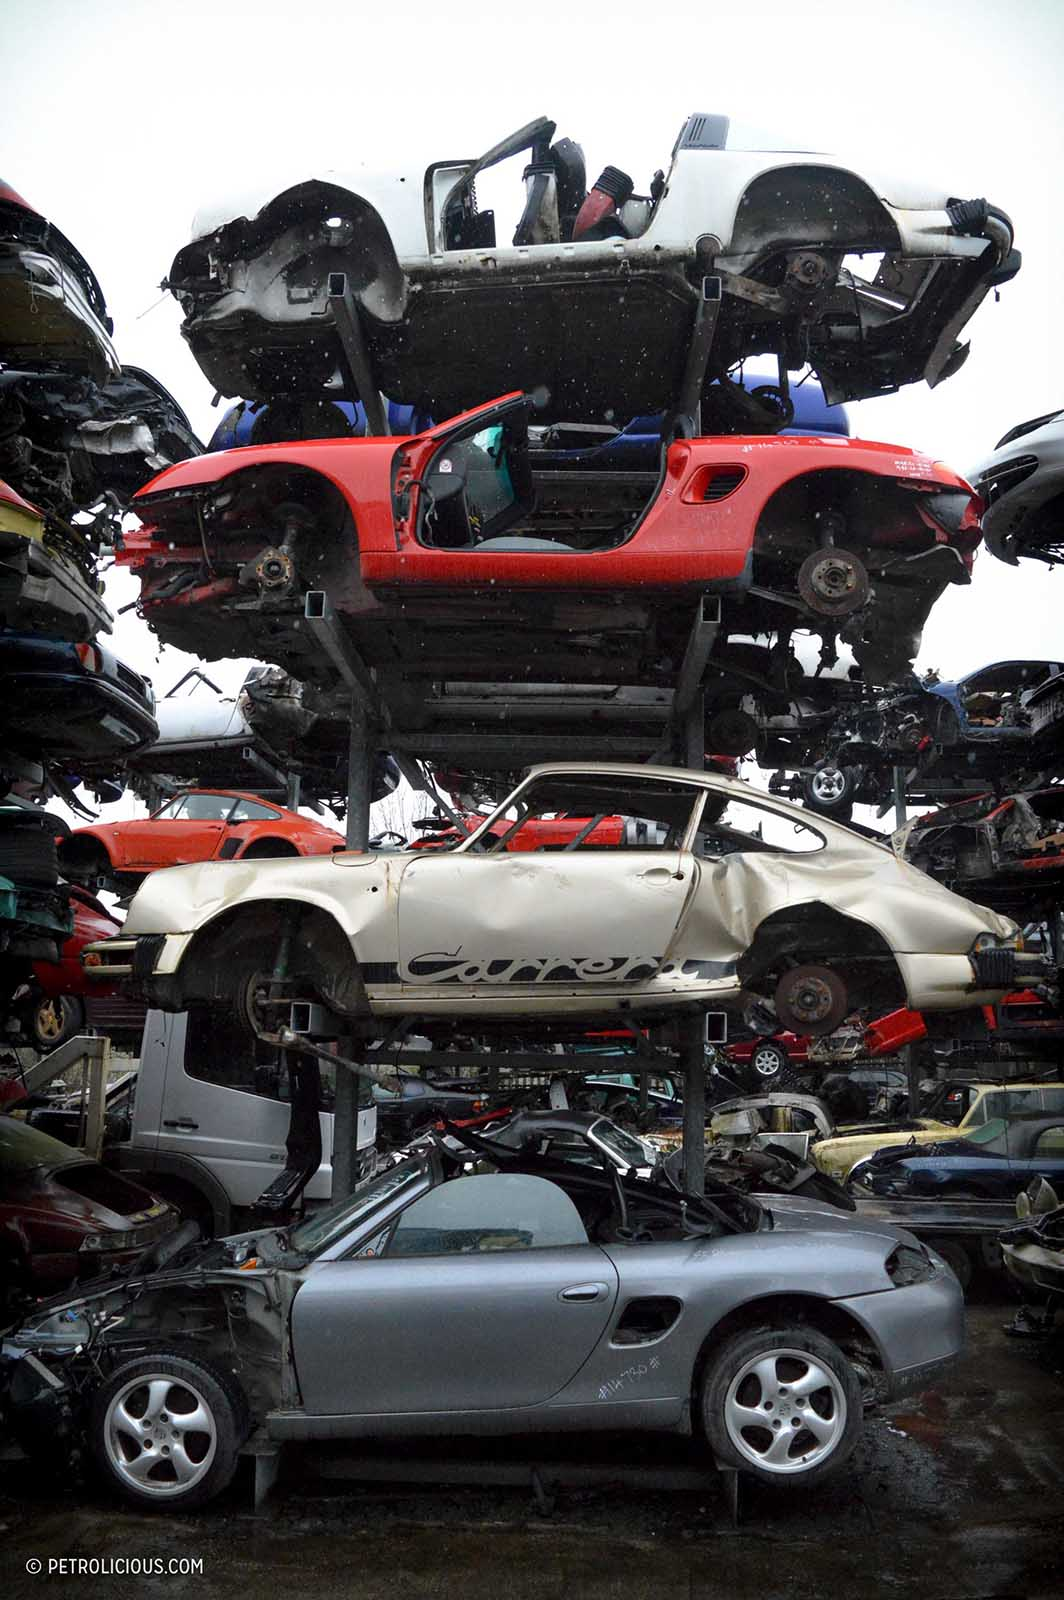 If you're looking to rebuild a car from scratch, you want to get the best sports car parts possible, but at an affordable price.